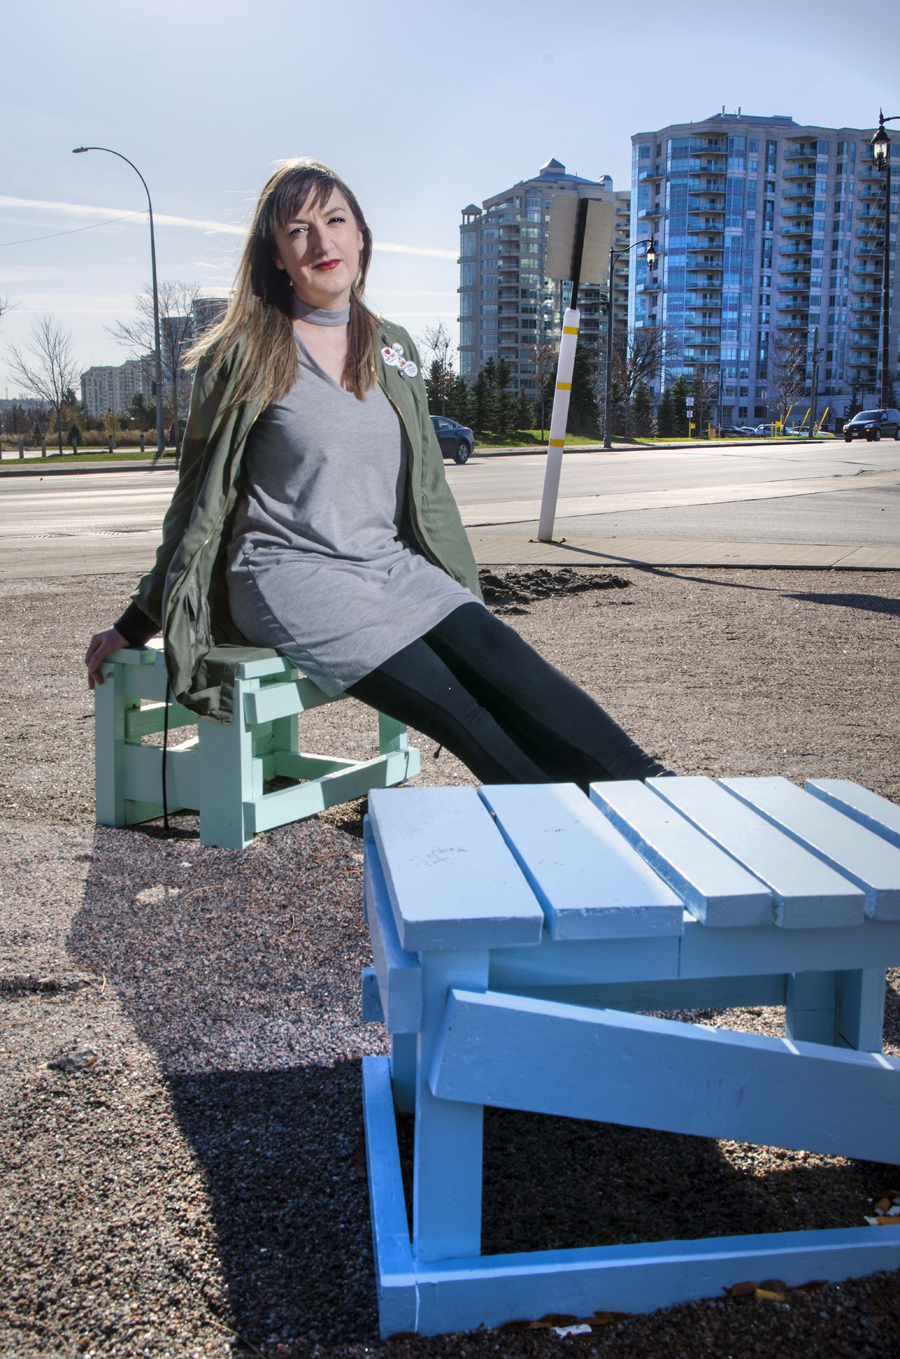 Young woman sits on brightly coloured stool downtown, condos behind her